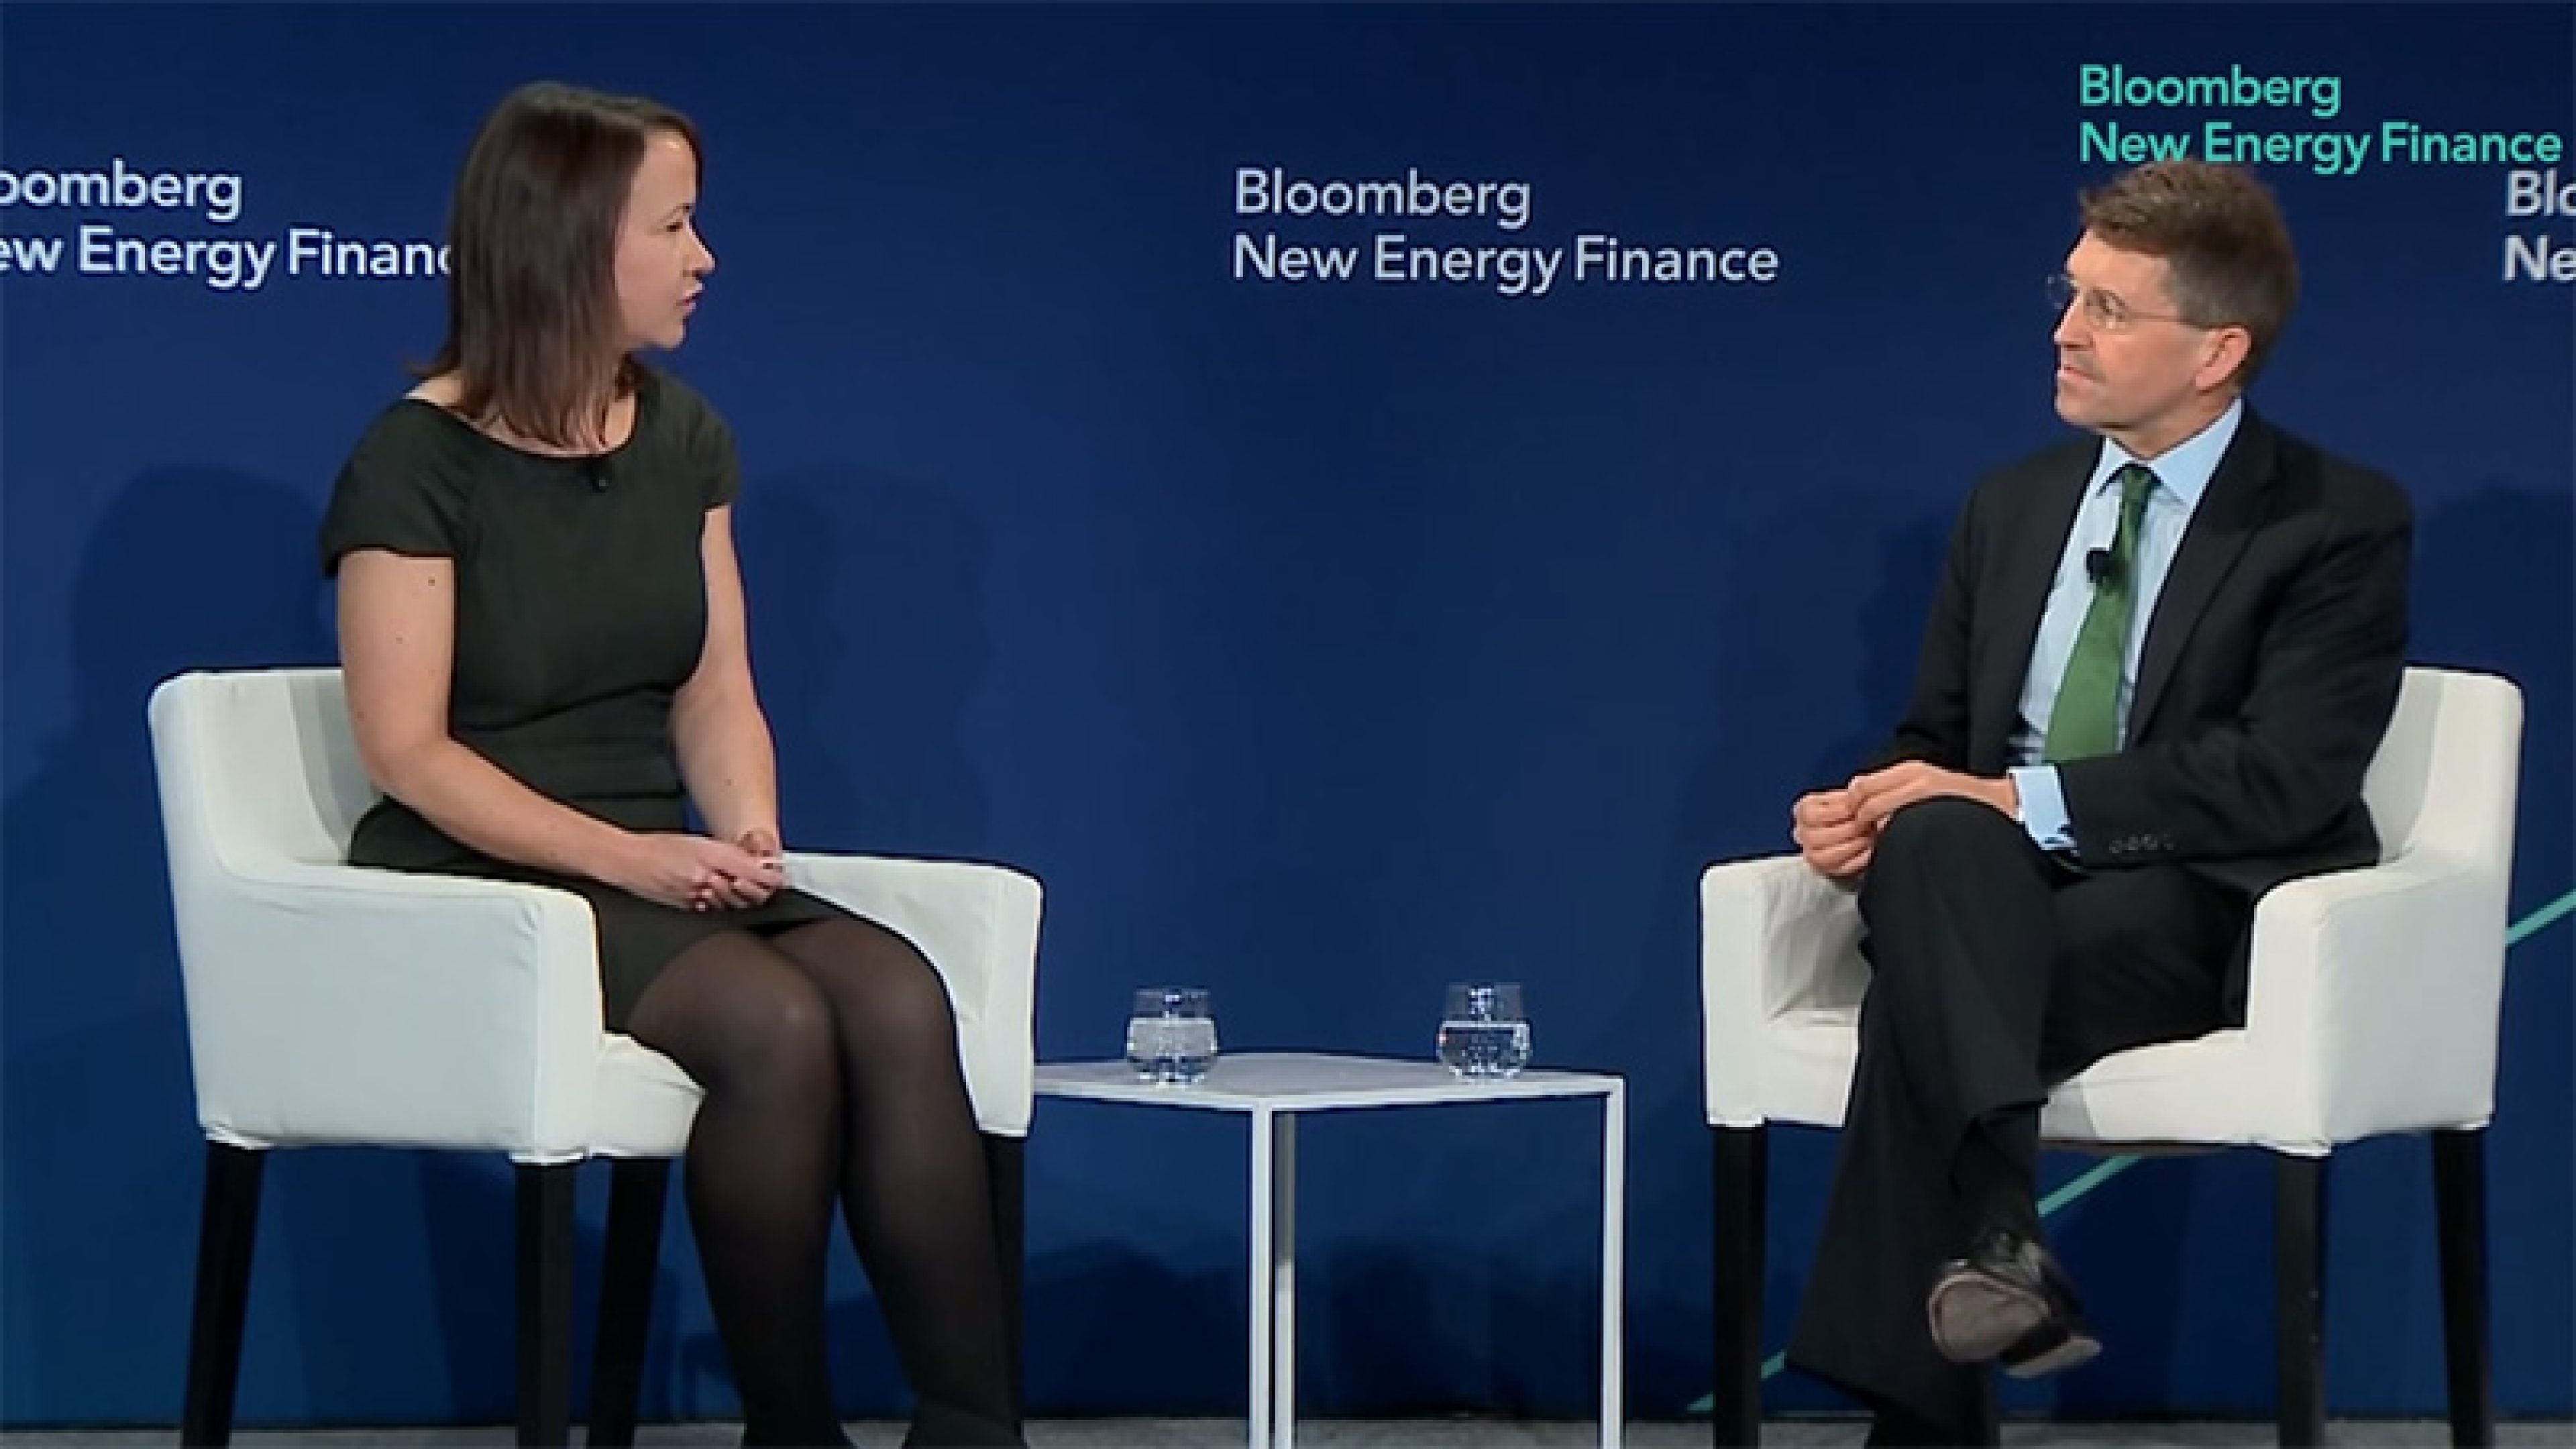 Tina Davis of Bloomberg with BP chief financial officer Brian Gilvary